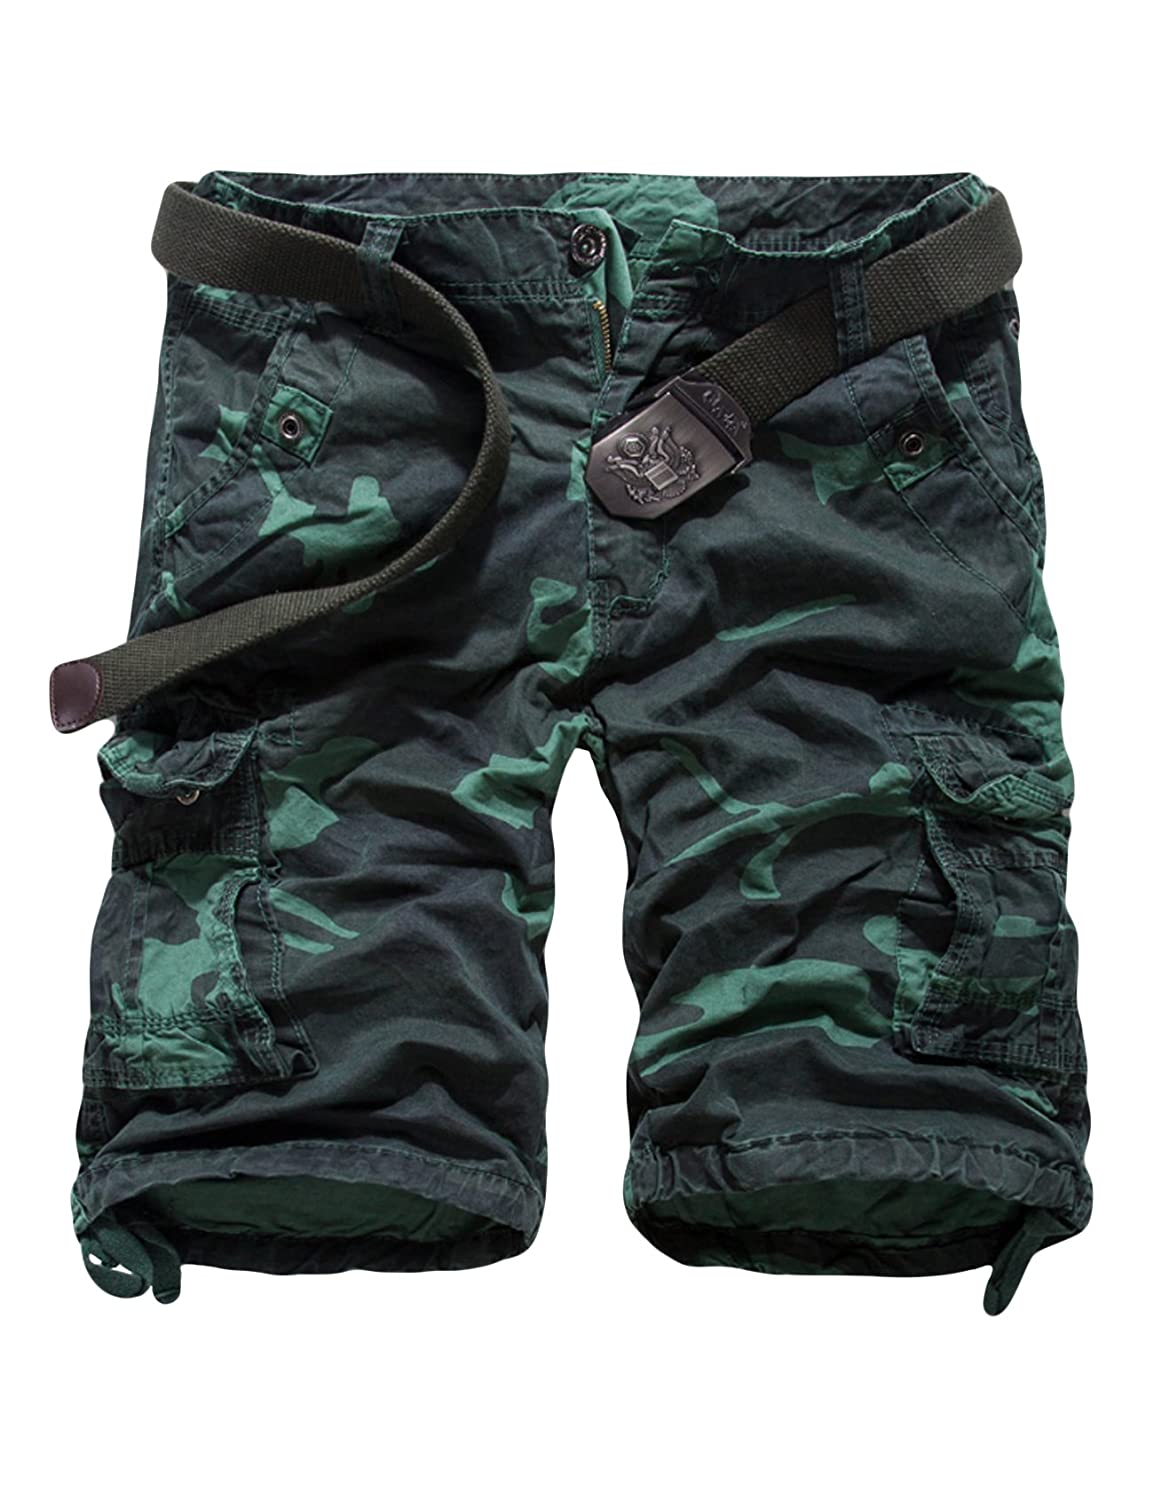 newrong Men's Cargo Shorts Camo Belted Relaxed Fit XZMYNC0492